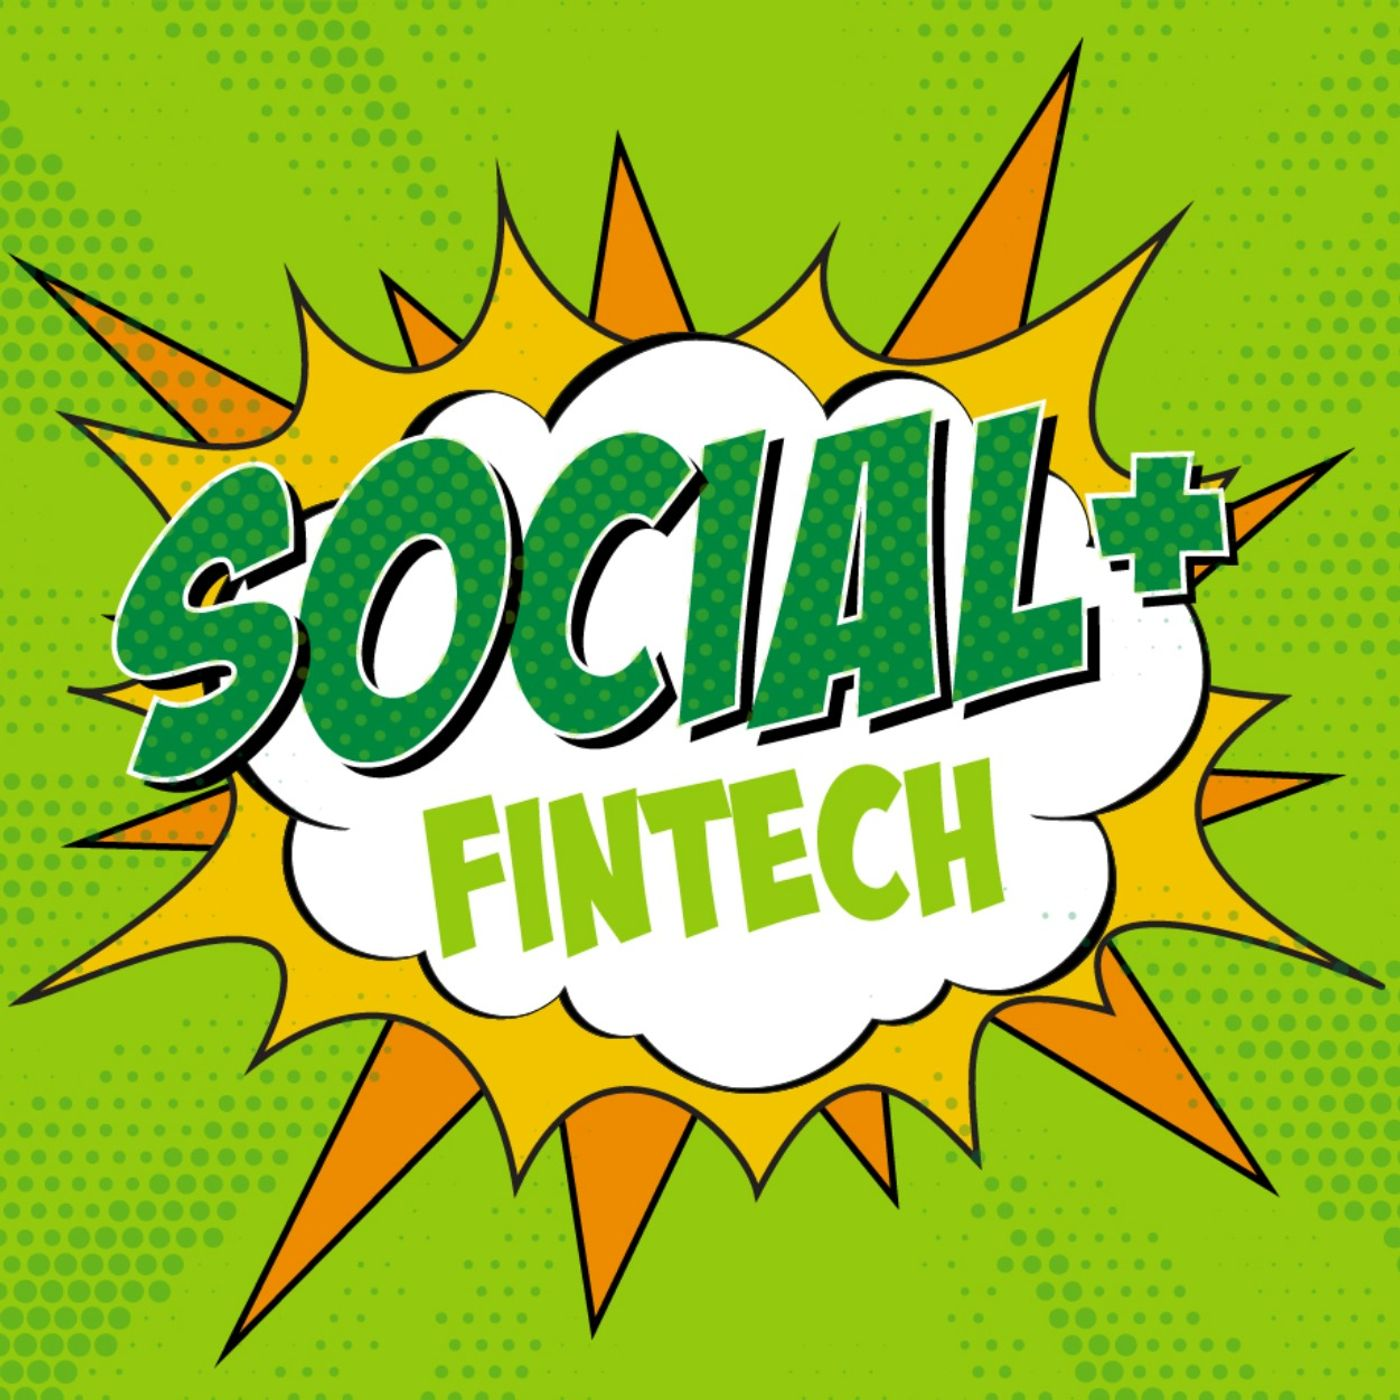 The Holy Grail of Social + Fintech